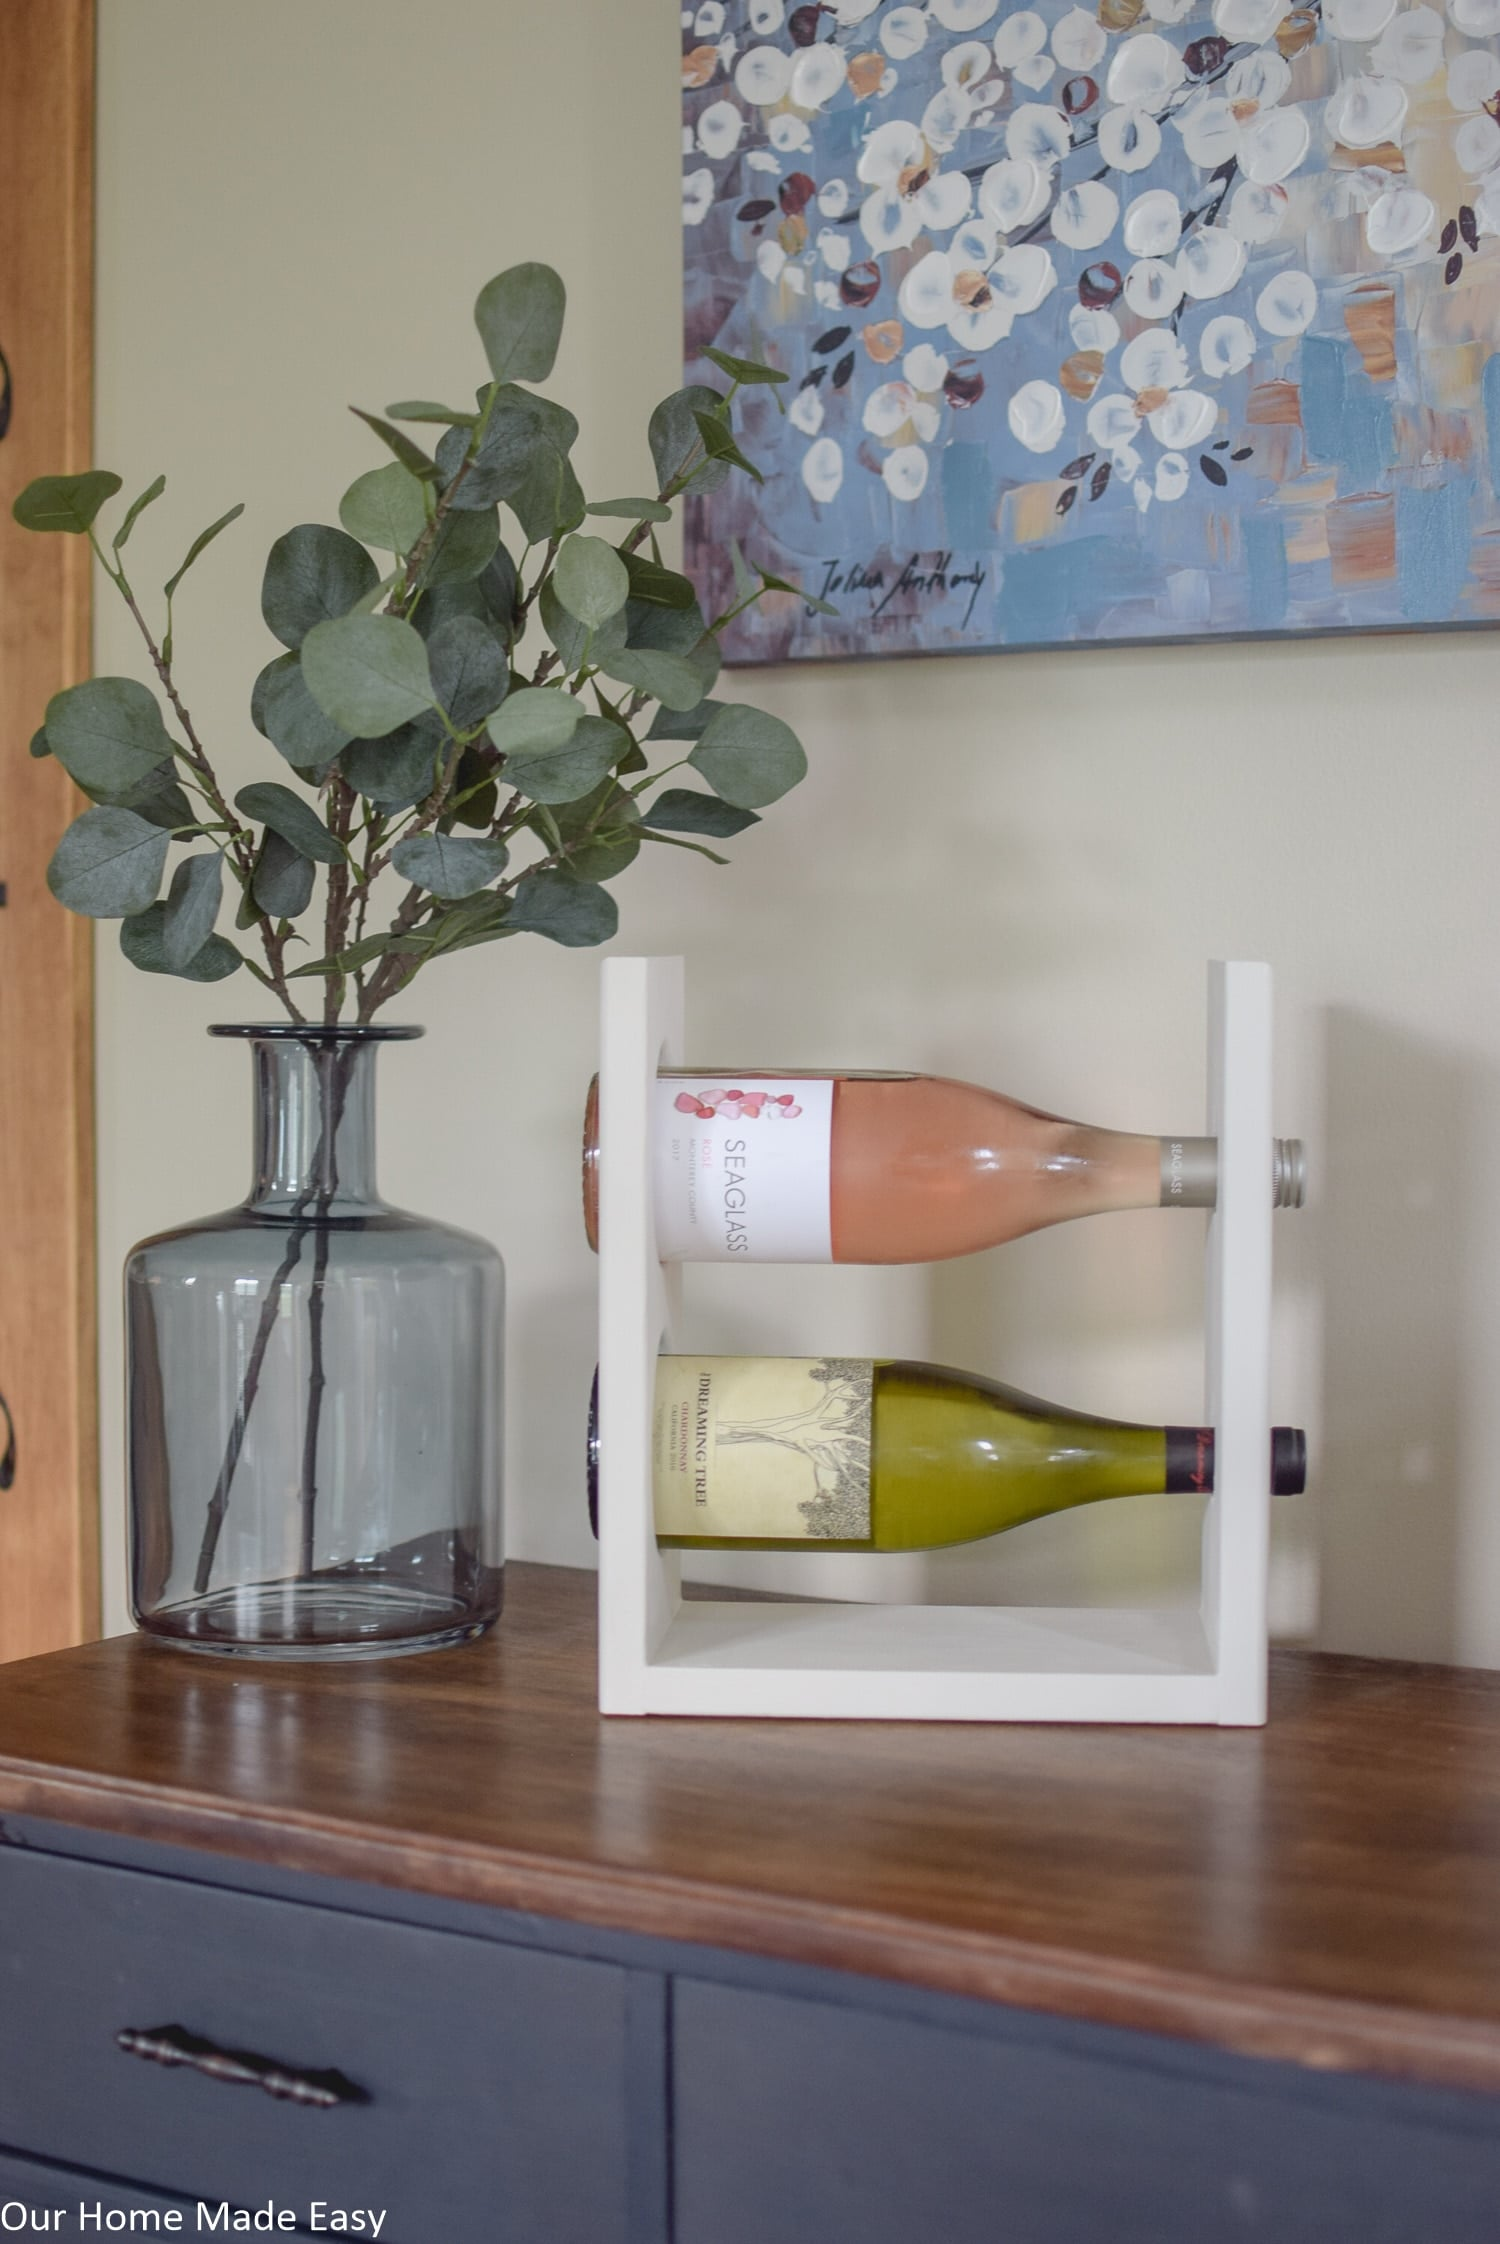 This simple DIY wine racks holds two average size bottles of wine - perfect for a couple's dinner